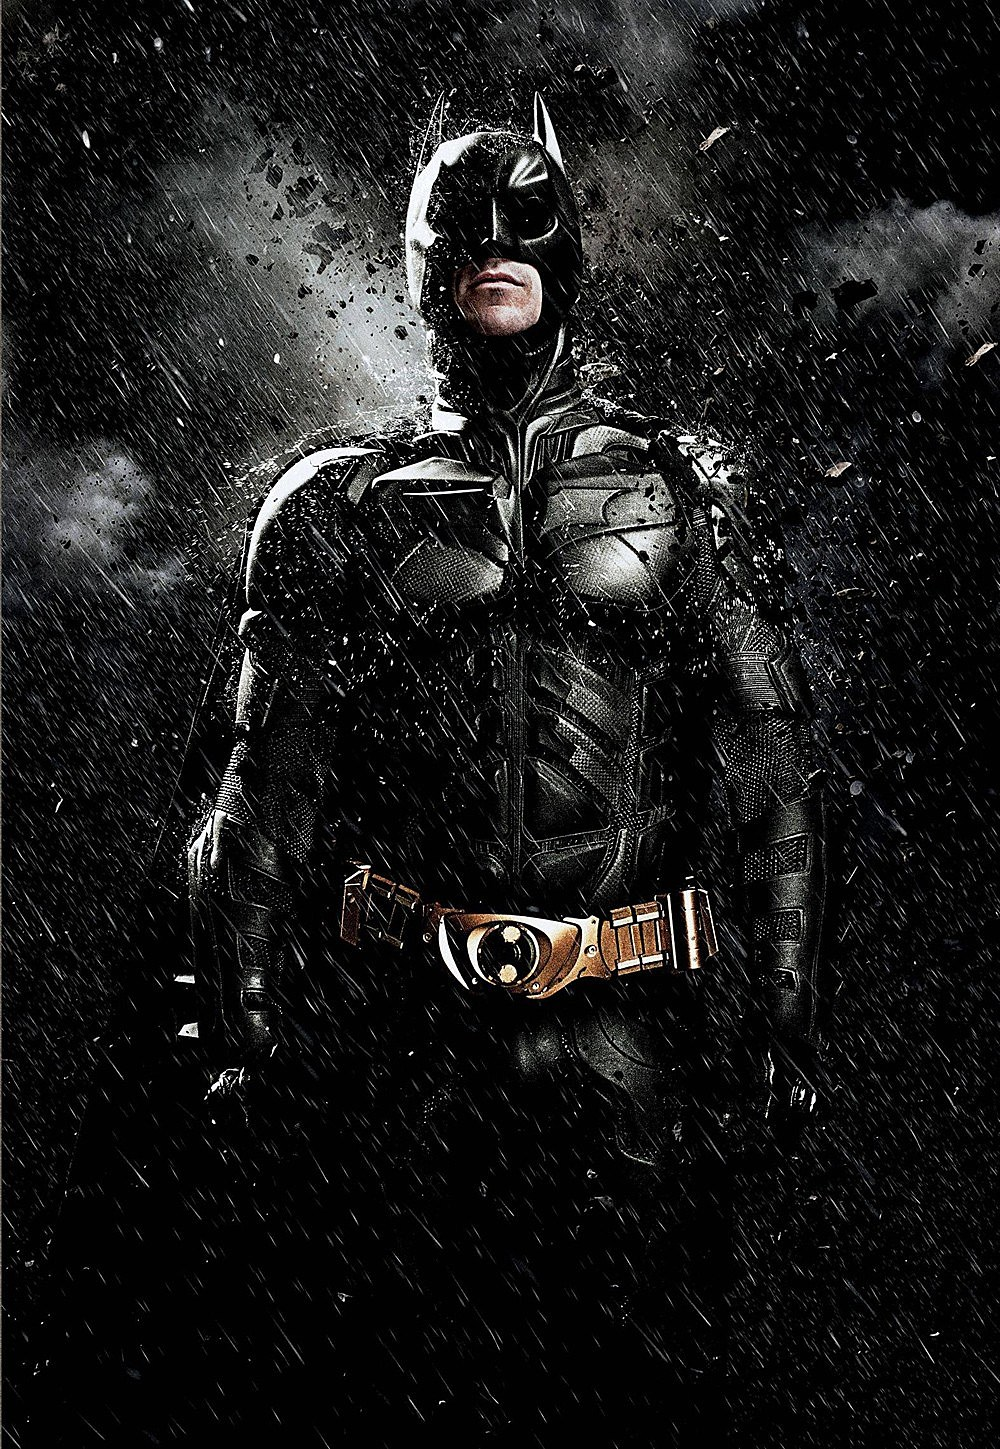 teh dark knight rises